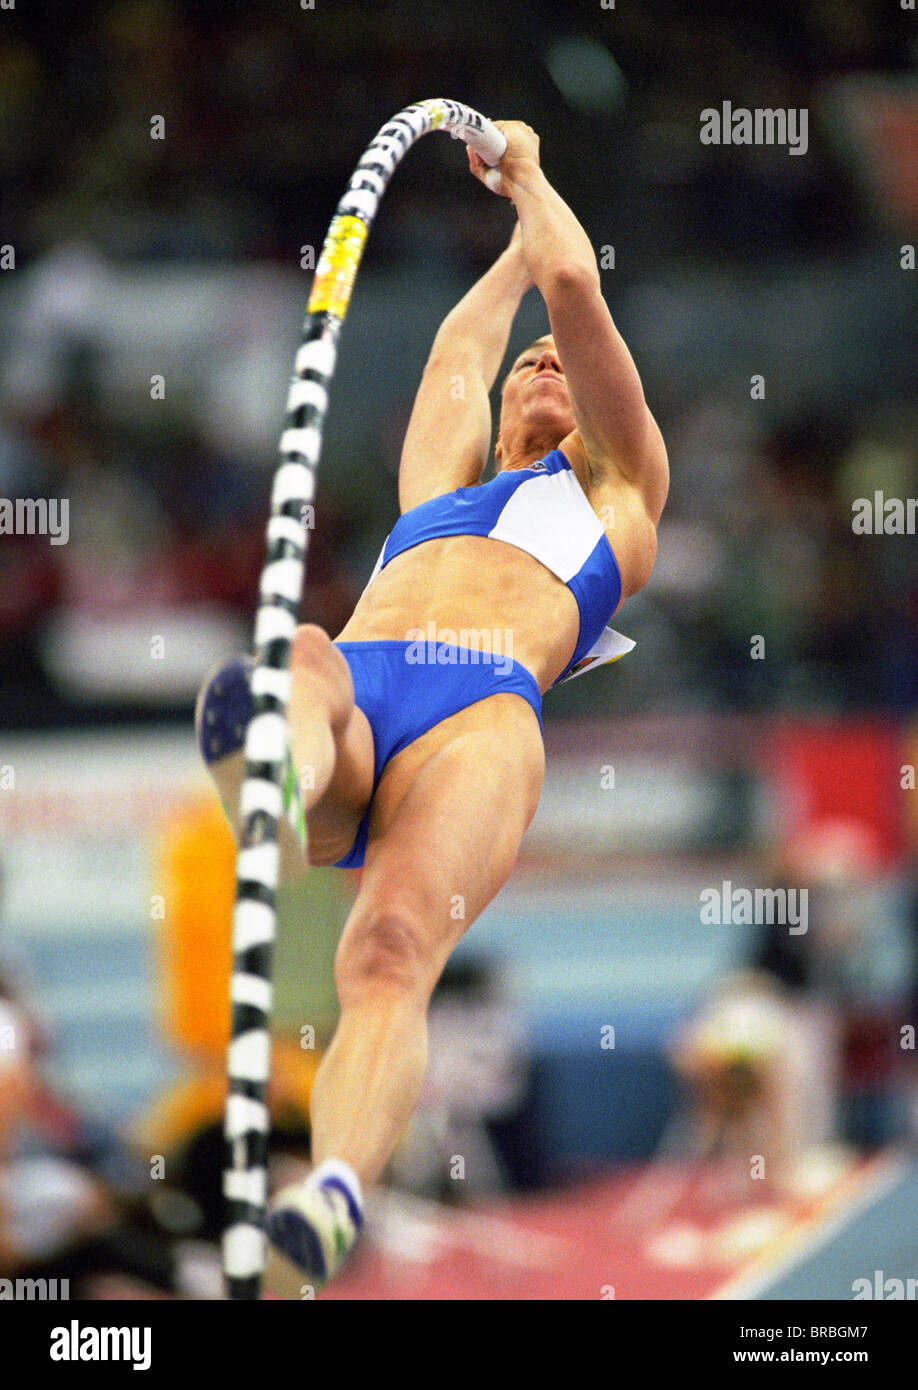 Female pole-vaulter bends pole as she launches herself at bar - Stock Image